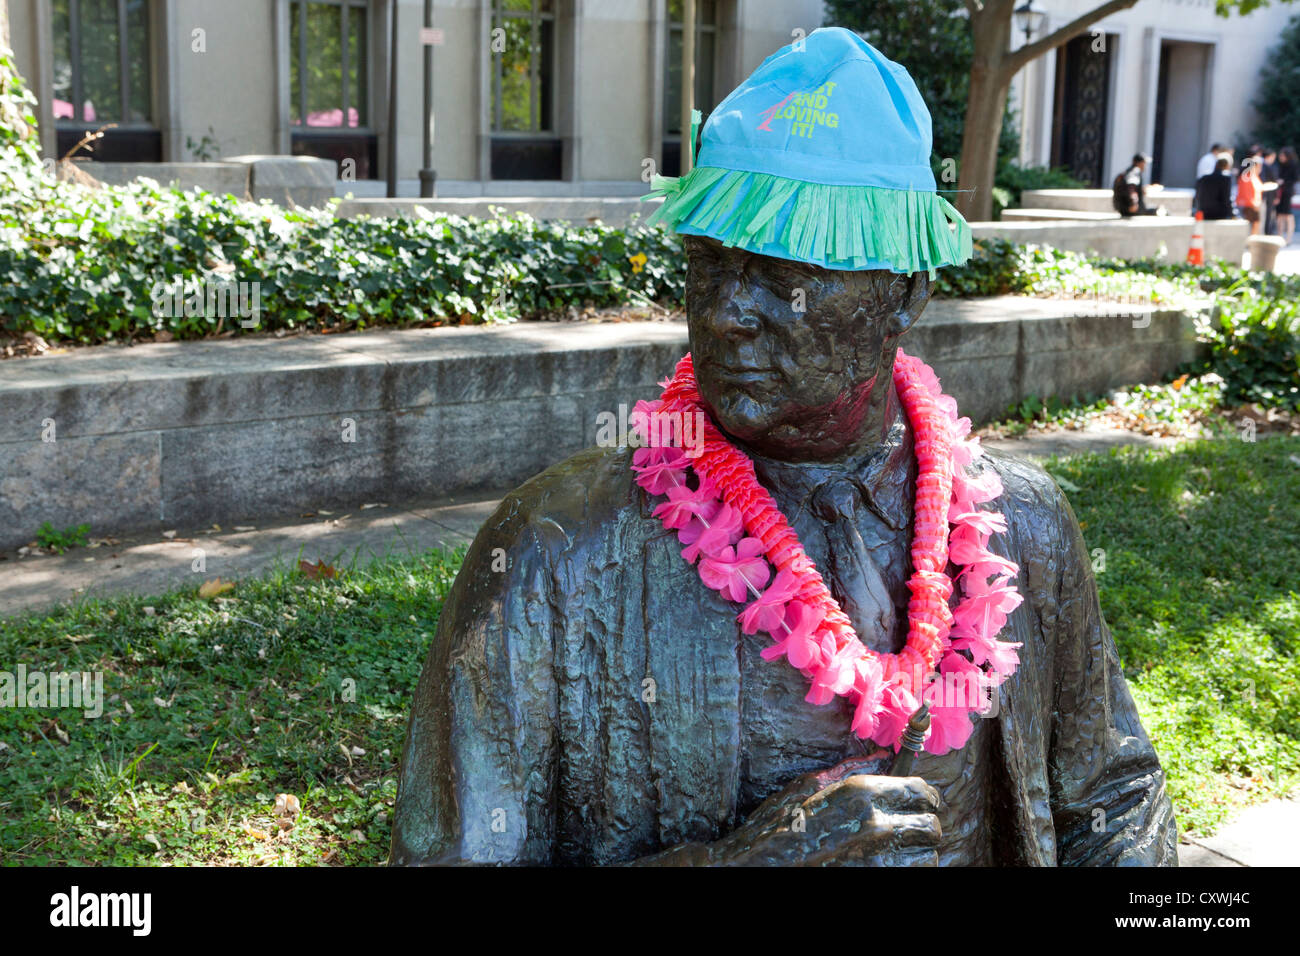 A bronze statue adorned with pink lei during Komen 3 Day Race for Cure - Washington, DC USA - Stock Image